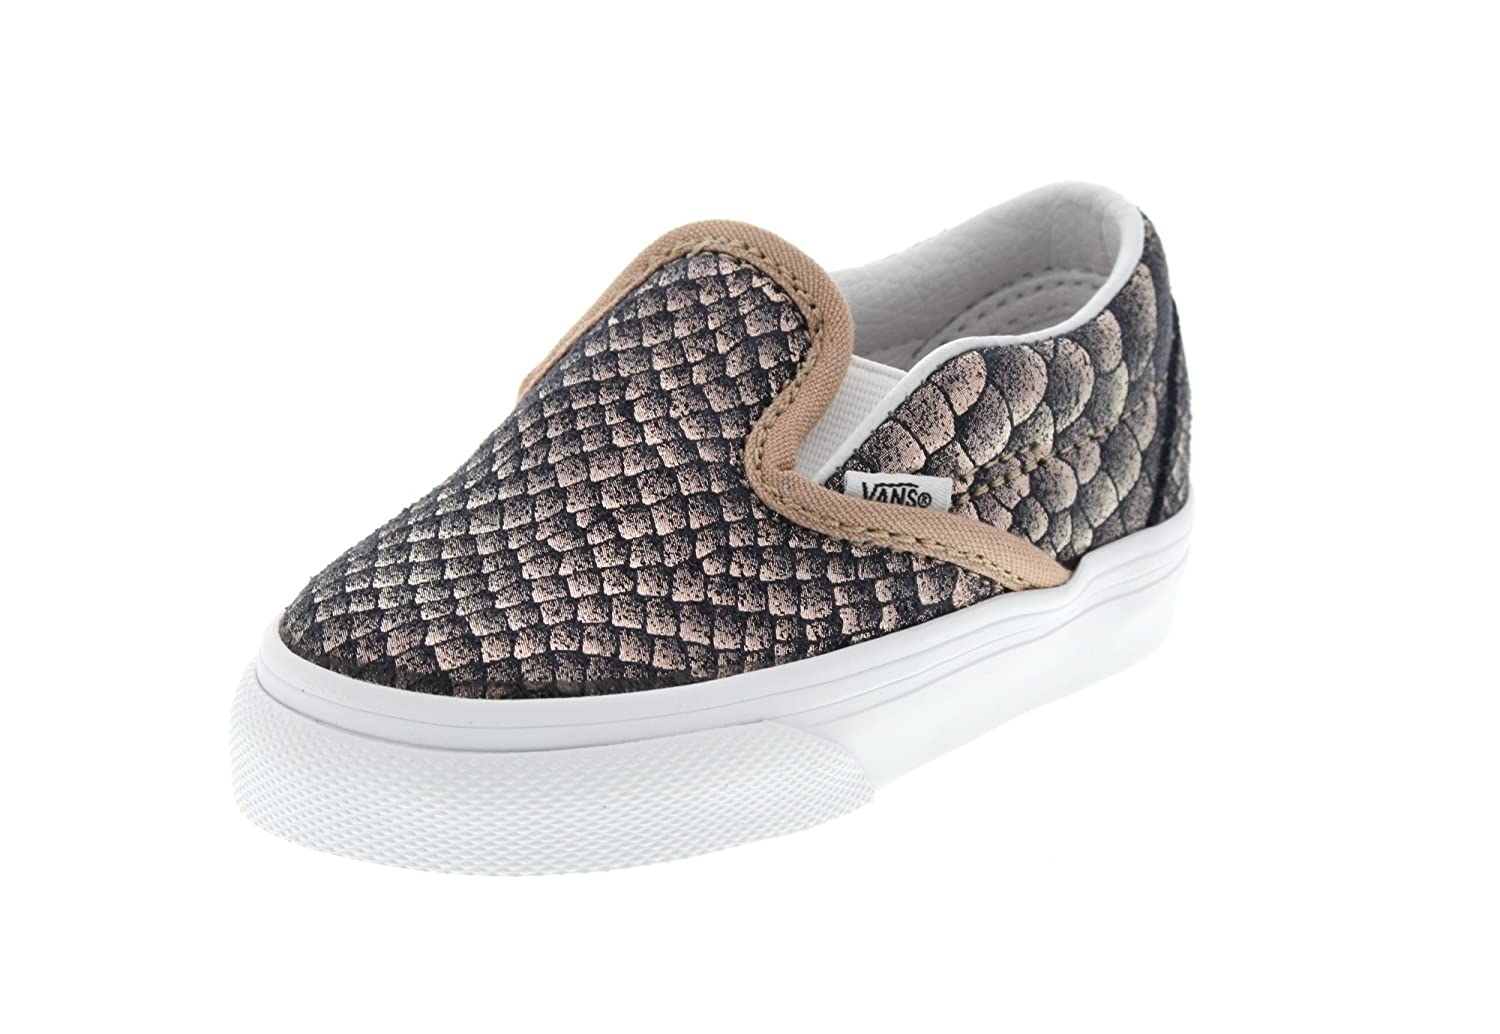 VANS Chaussures Enfants - CLASSIC SLIP ON metallic snake rose